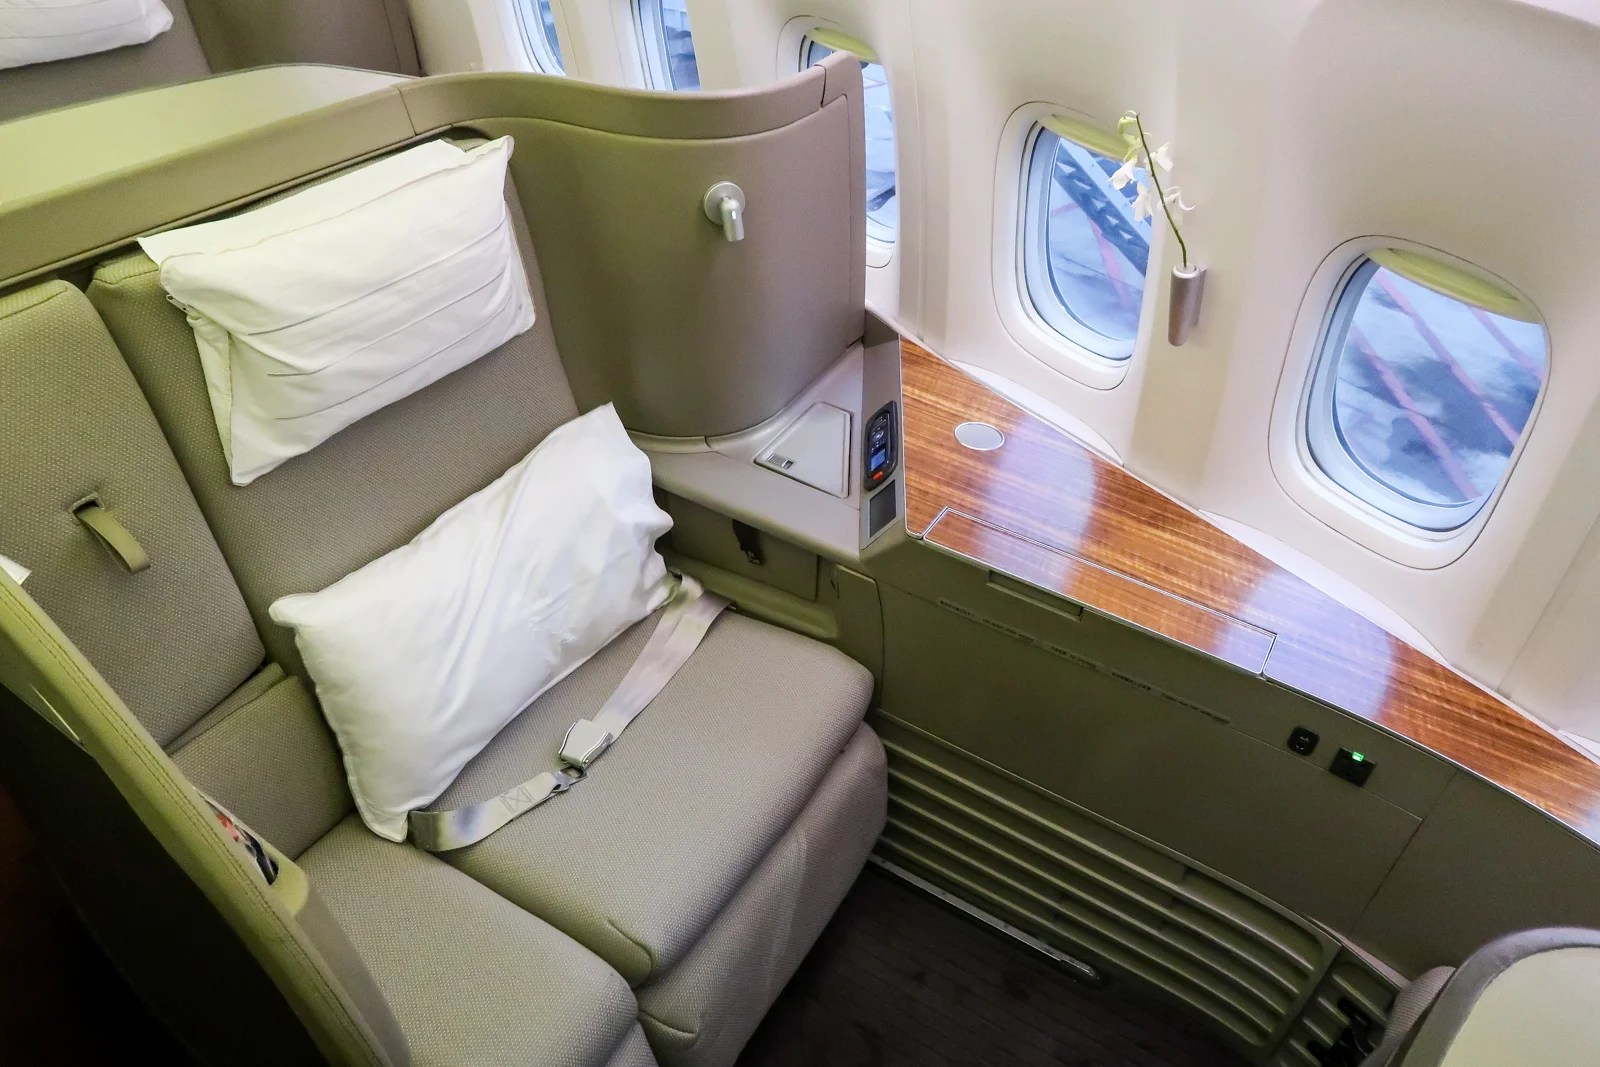 Classic Luxury: Cathay Pacific (777-300ER) in First Class From Hong Kong to Boston